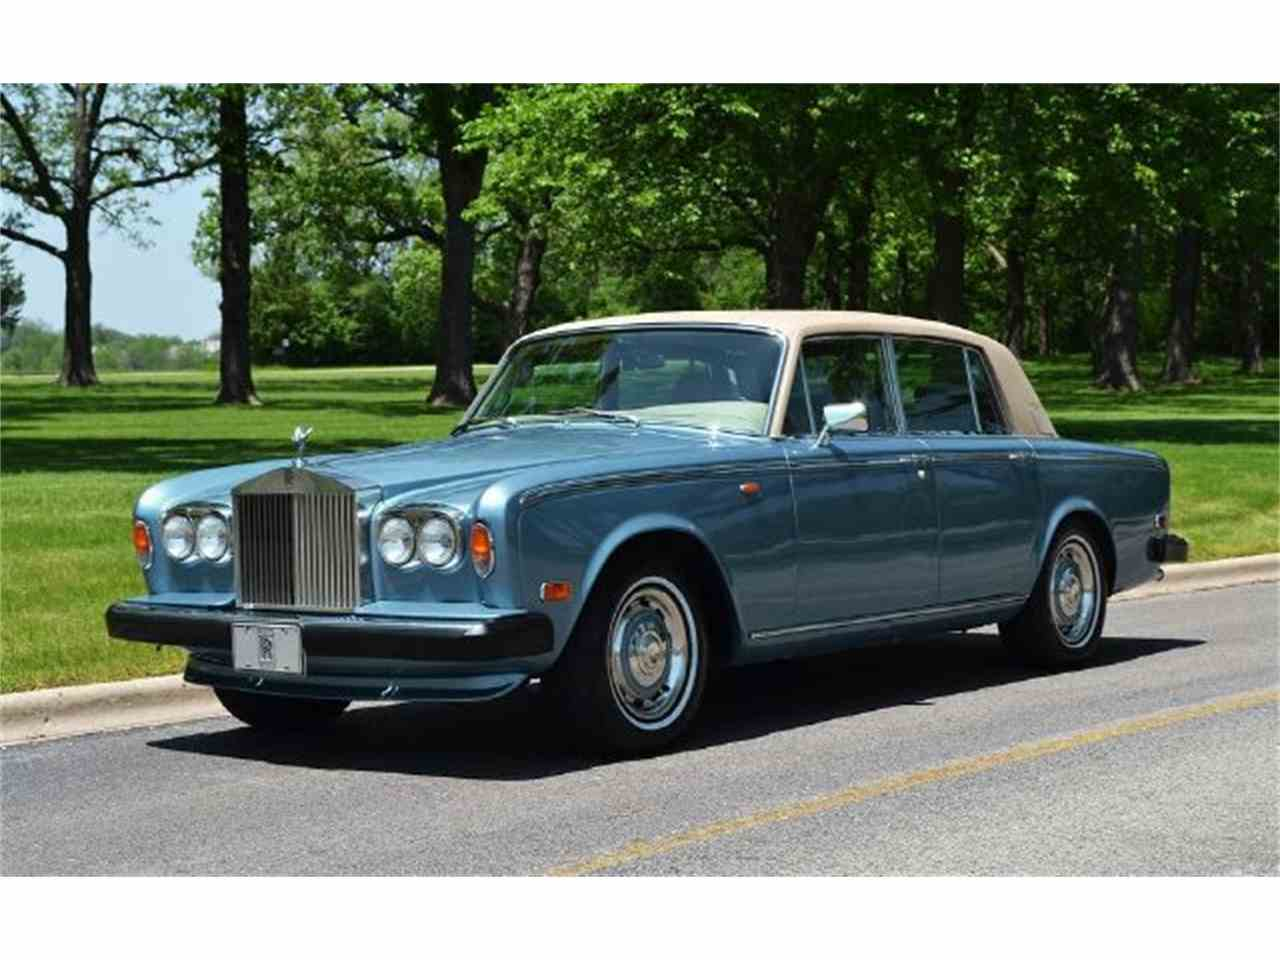 Large Picture of Classic '73 Silver Shadow located in Illinois Auction Vehicle Offered by Park-Ward Motors - A949